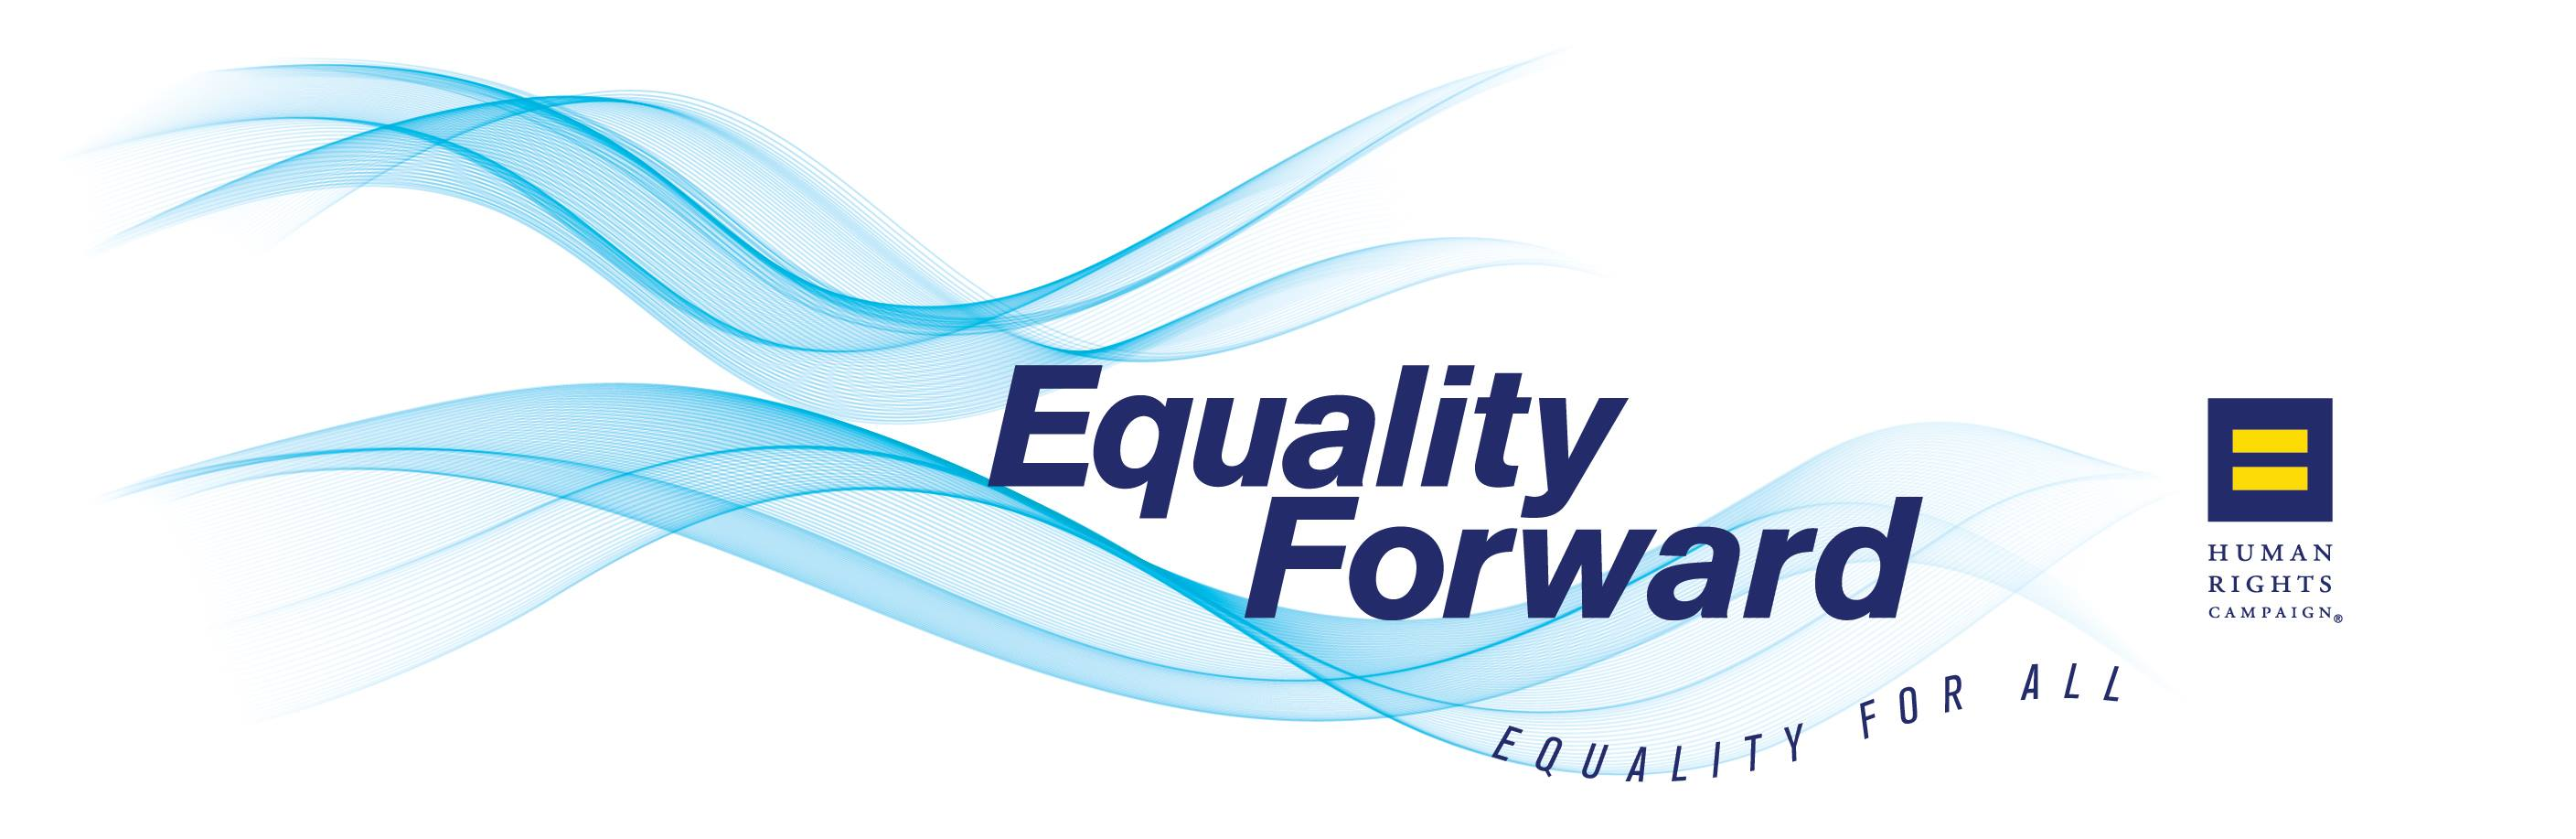 2016 Seattle Gala Equality Forward